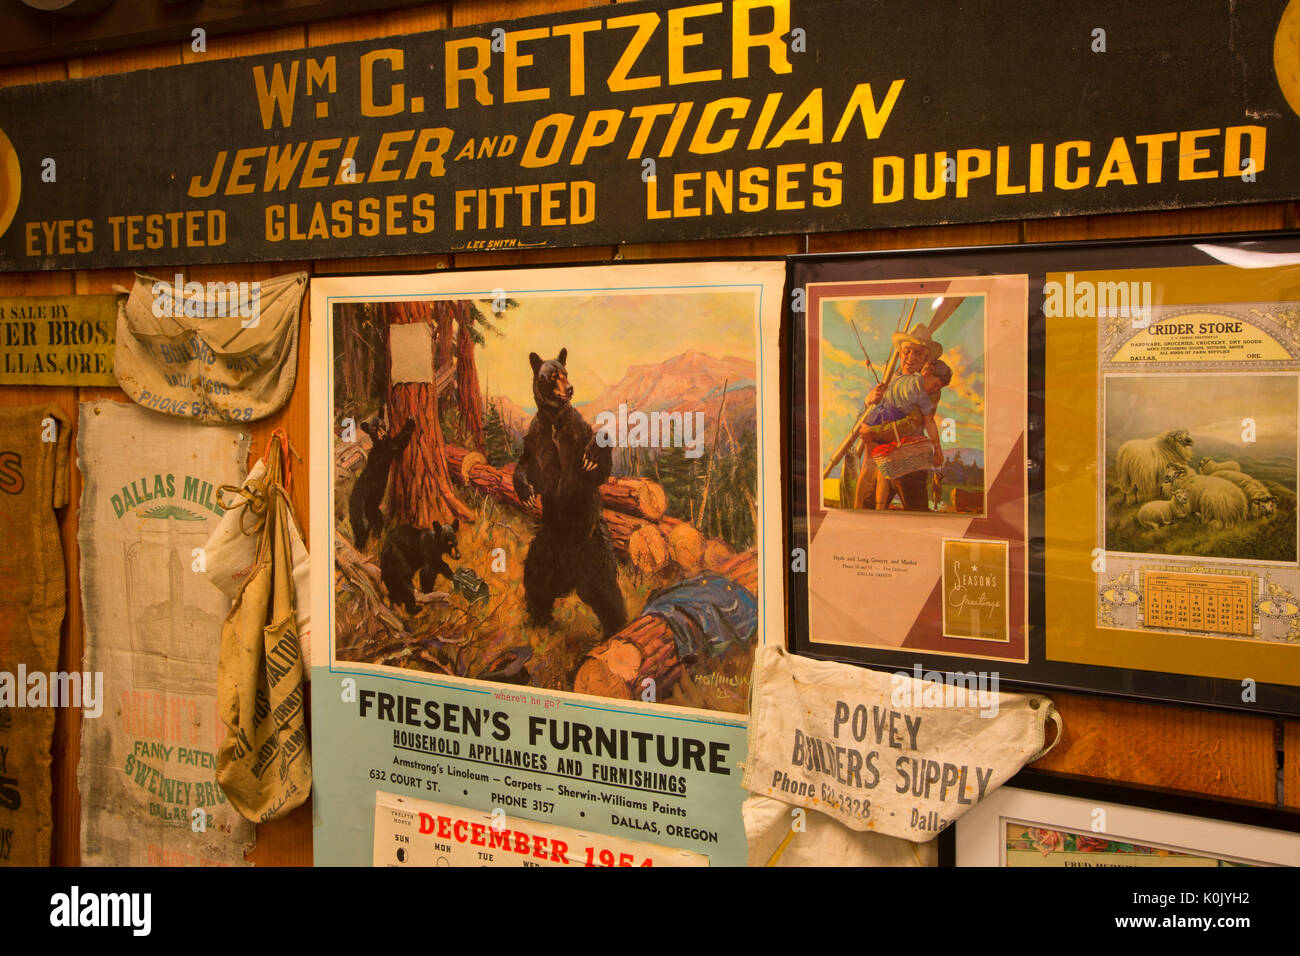 Early industries display, Polk County Museum, Rickreall, Oregon - Stock Image